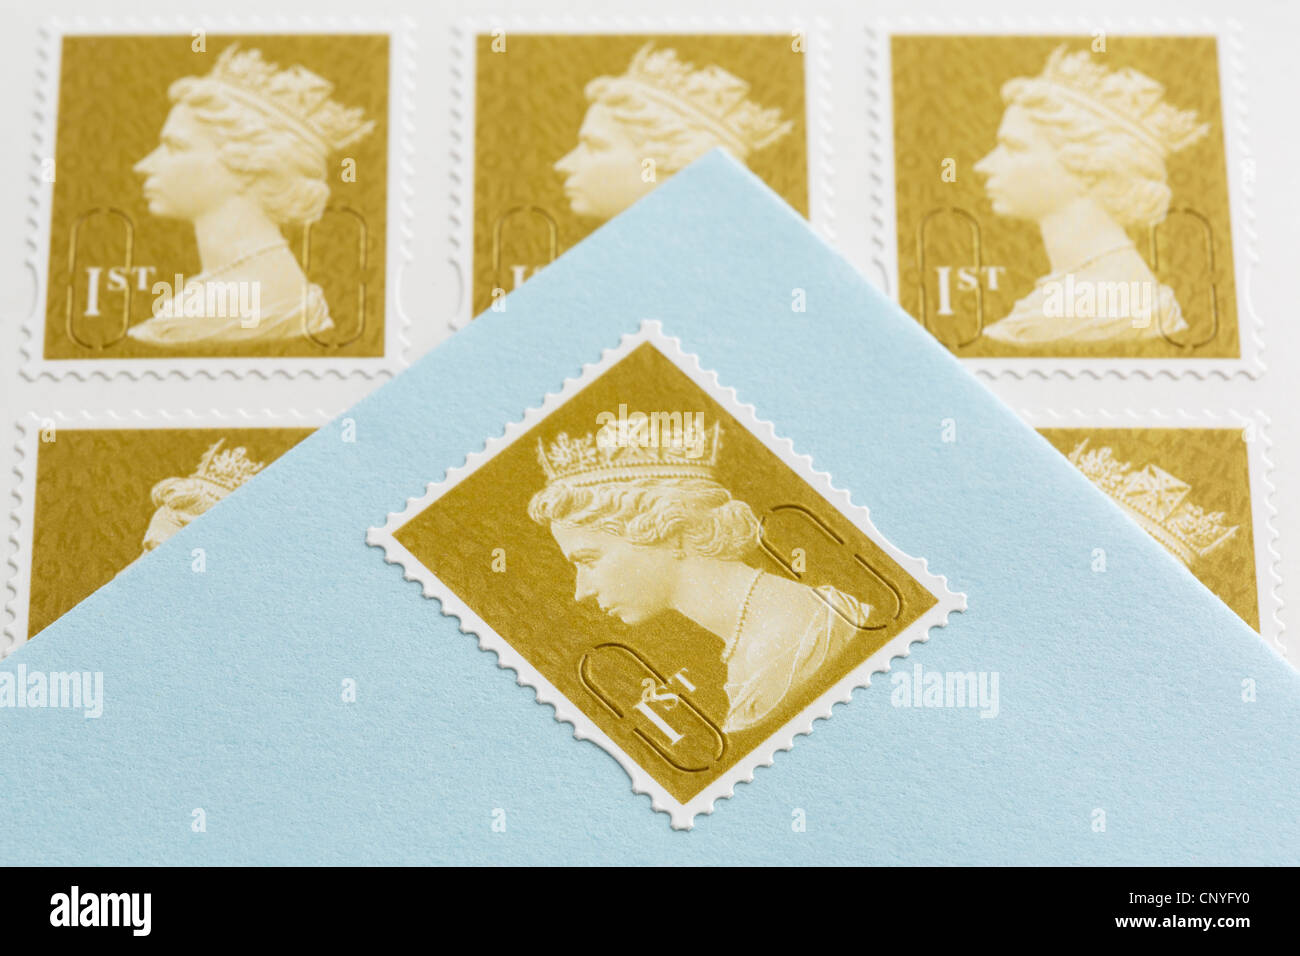 UK, Britain. Royal Mail first class postage stamps and an envelope with a stamp stuck on - Stock Image